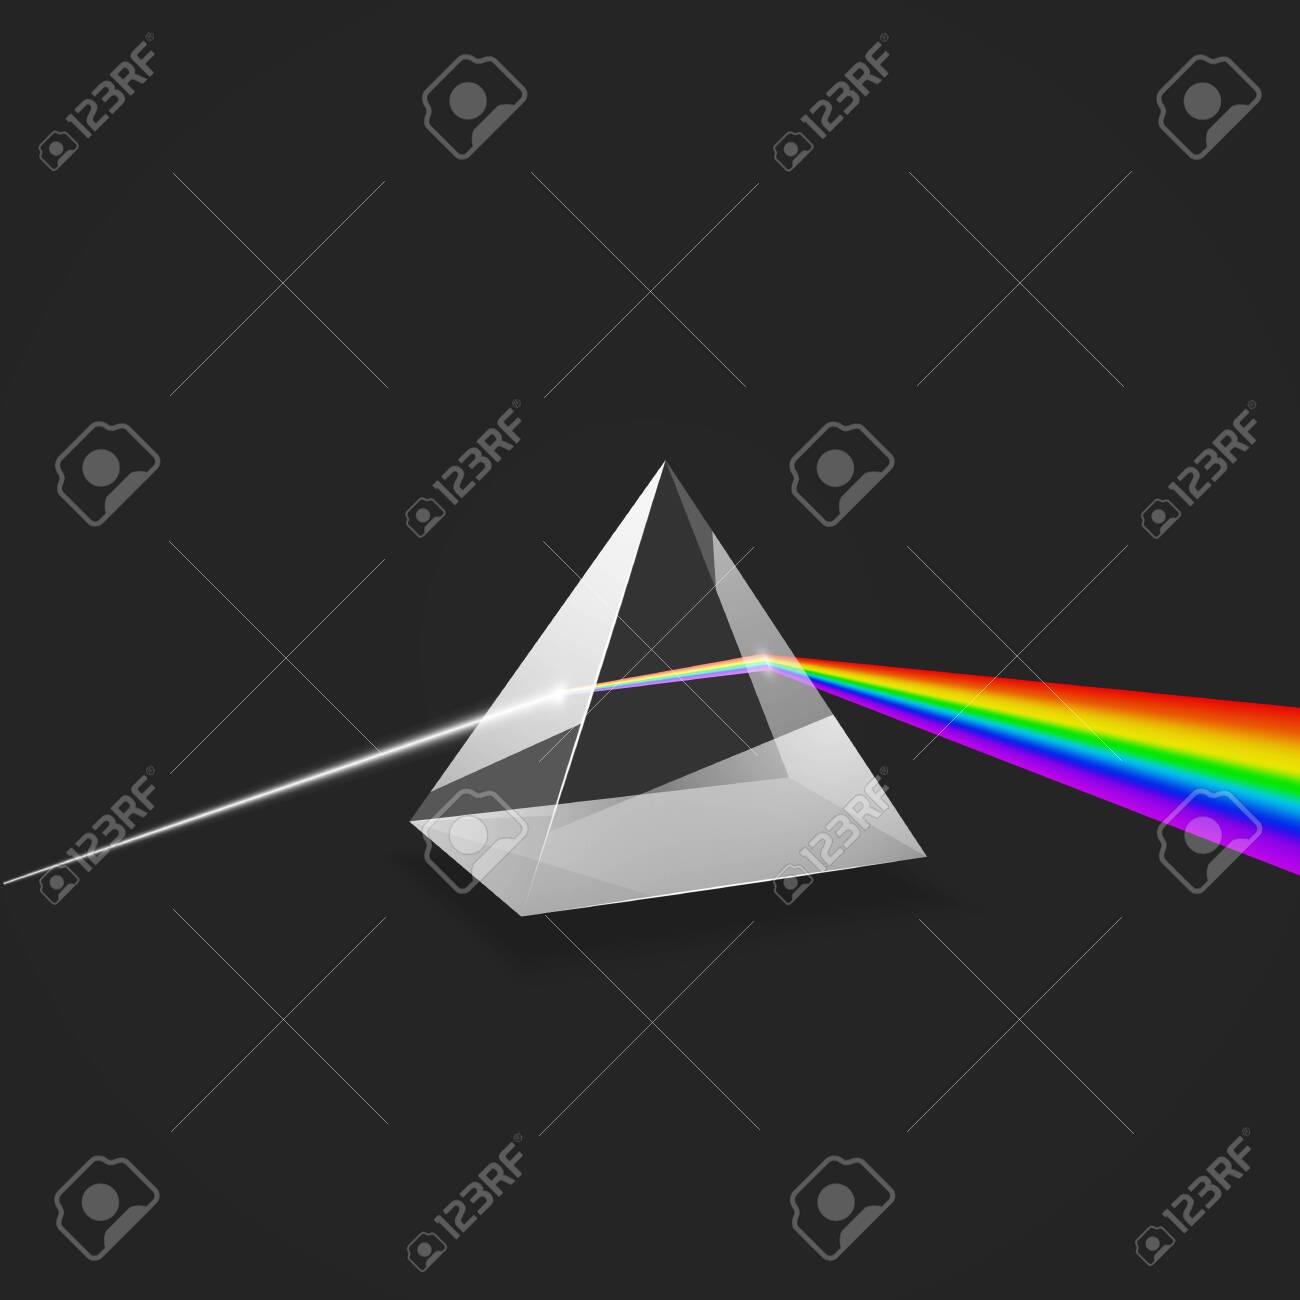 Dispersion. Colorful spectrum of light. Glass prism and beam of light. Science experiment with light. Vector illustration - 123249964